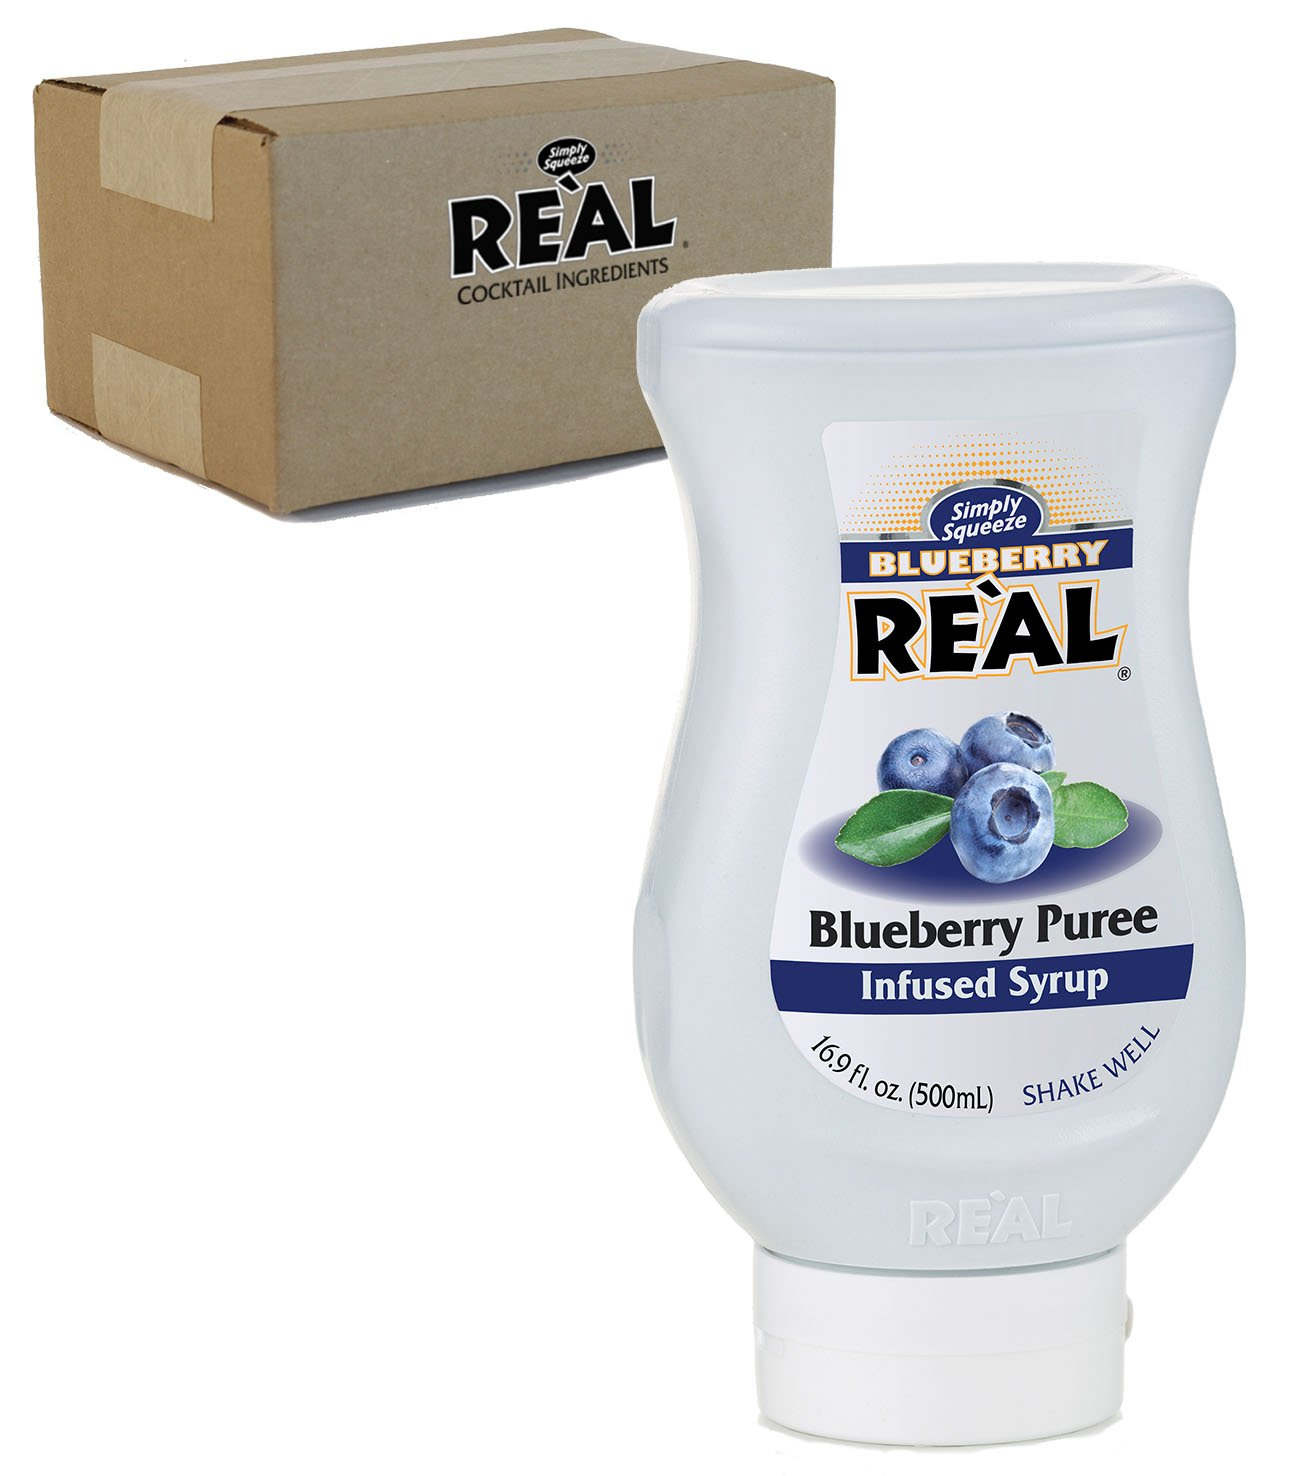 Blueberry Reàl, Blueberry Puree Infused Syrup, 16.9 FL OZ Squeezable Bottle (Pack of 1)